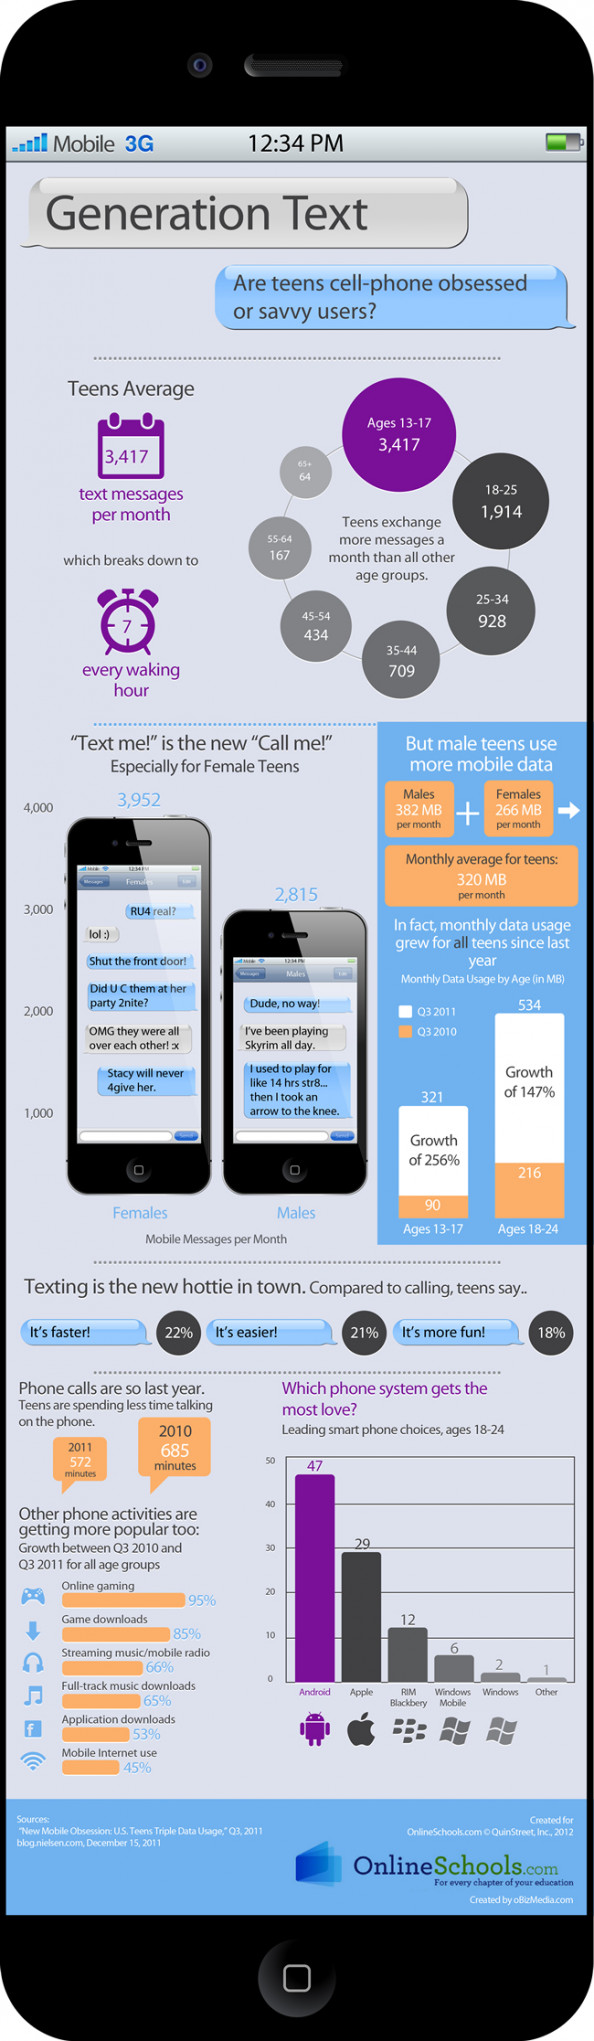 Generation Text: Are Teens Cellphone Obssesed or Savvy Users? Infographic